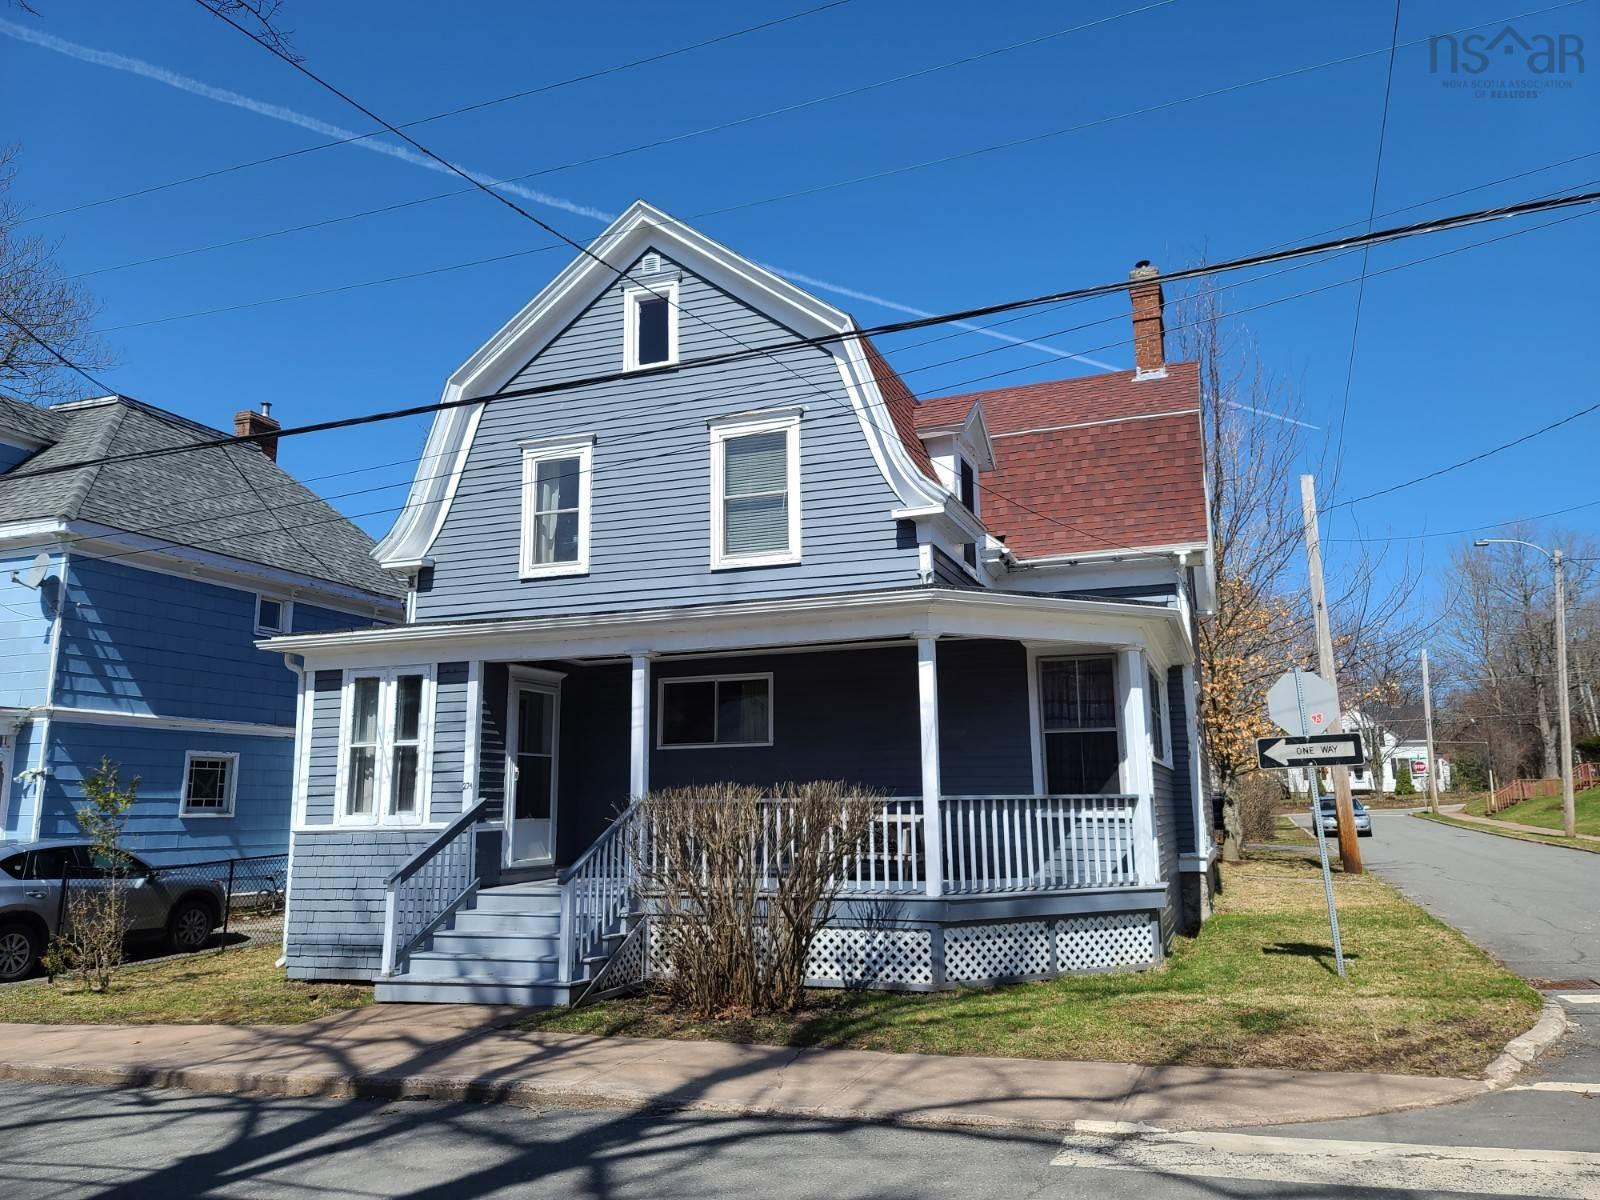 274 Forbes Street, New Glasgow, NS B2H 4P6, 3 Bedrooms Bedrooms, ,2 BathroomsBathrooms,For Sale,274 Forbes Street,202108272